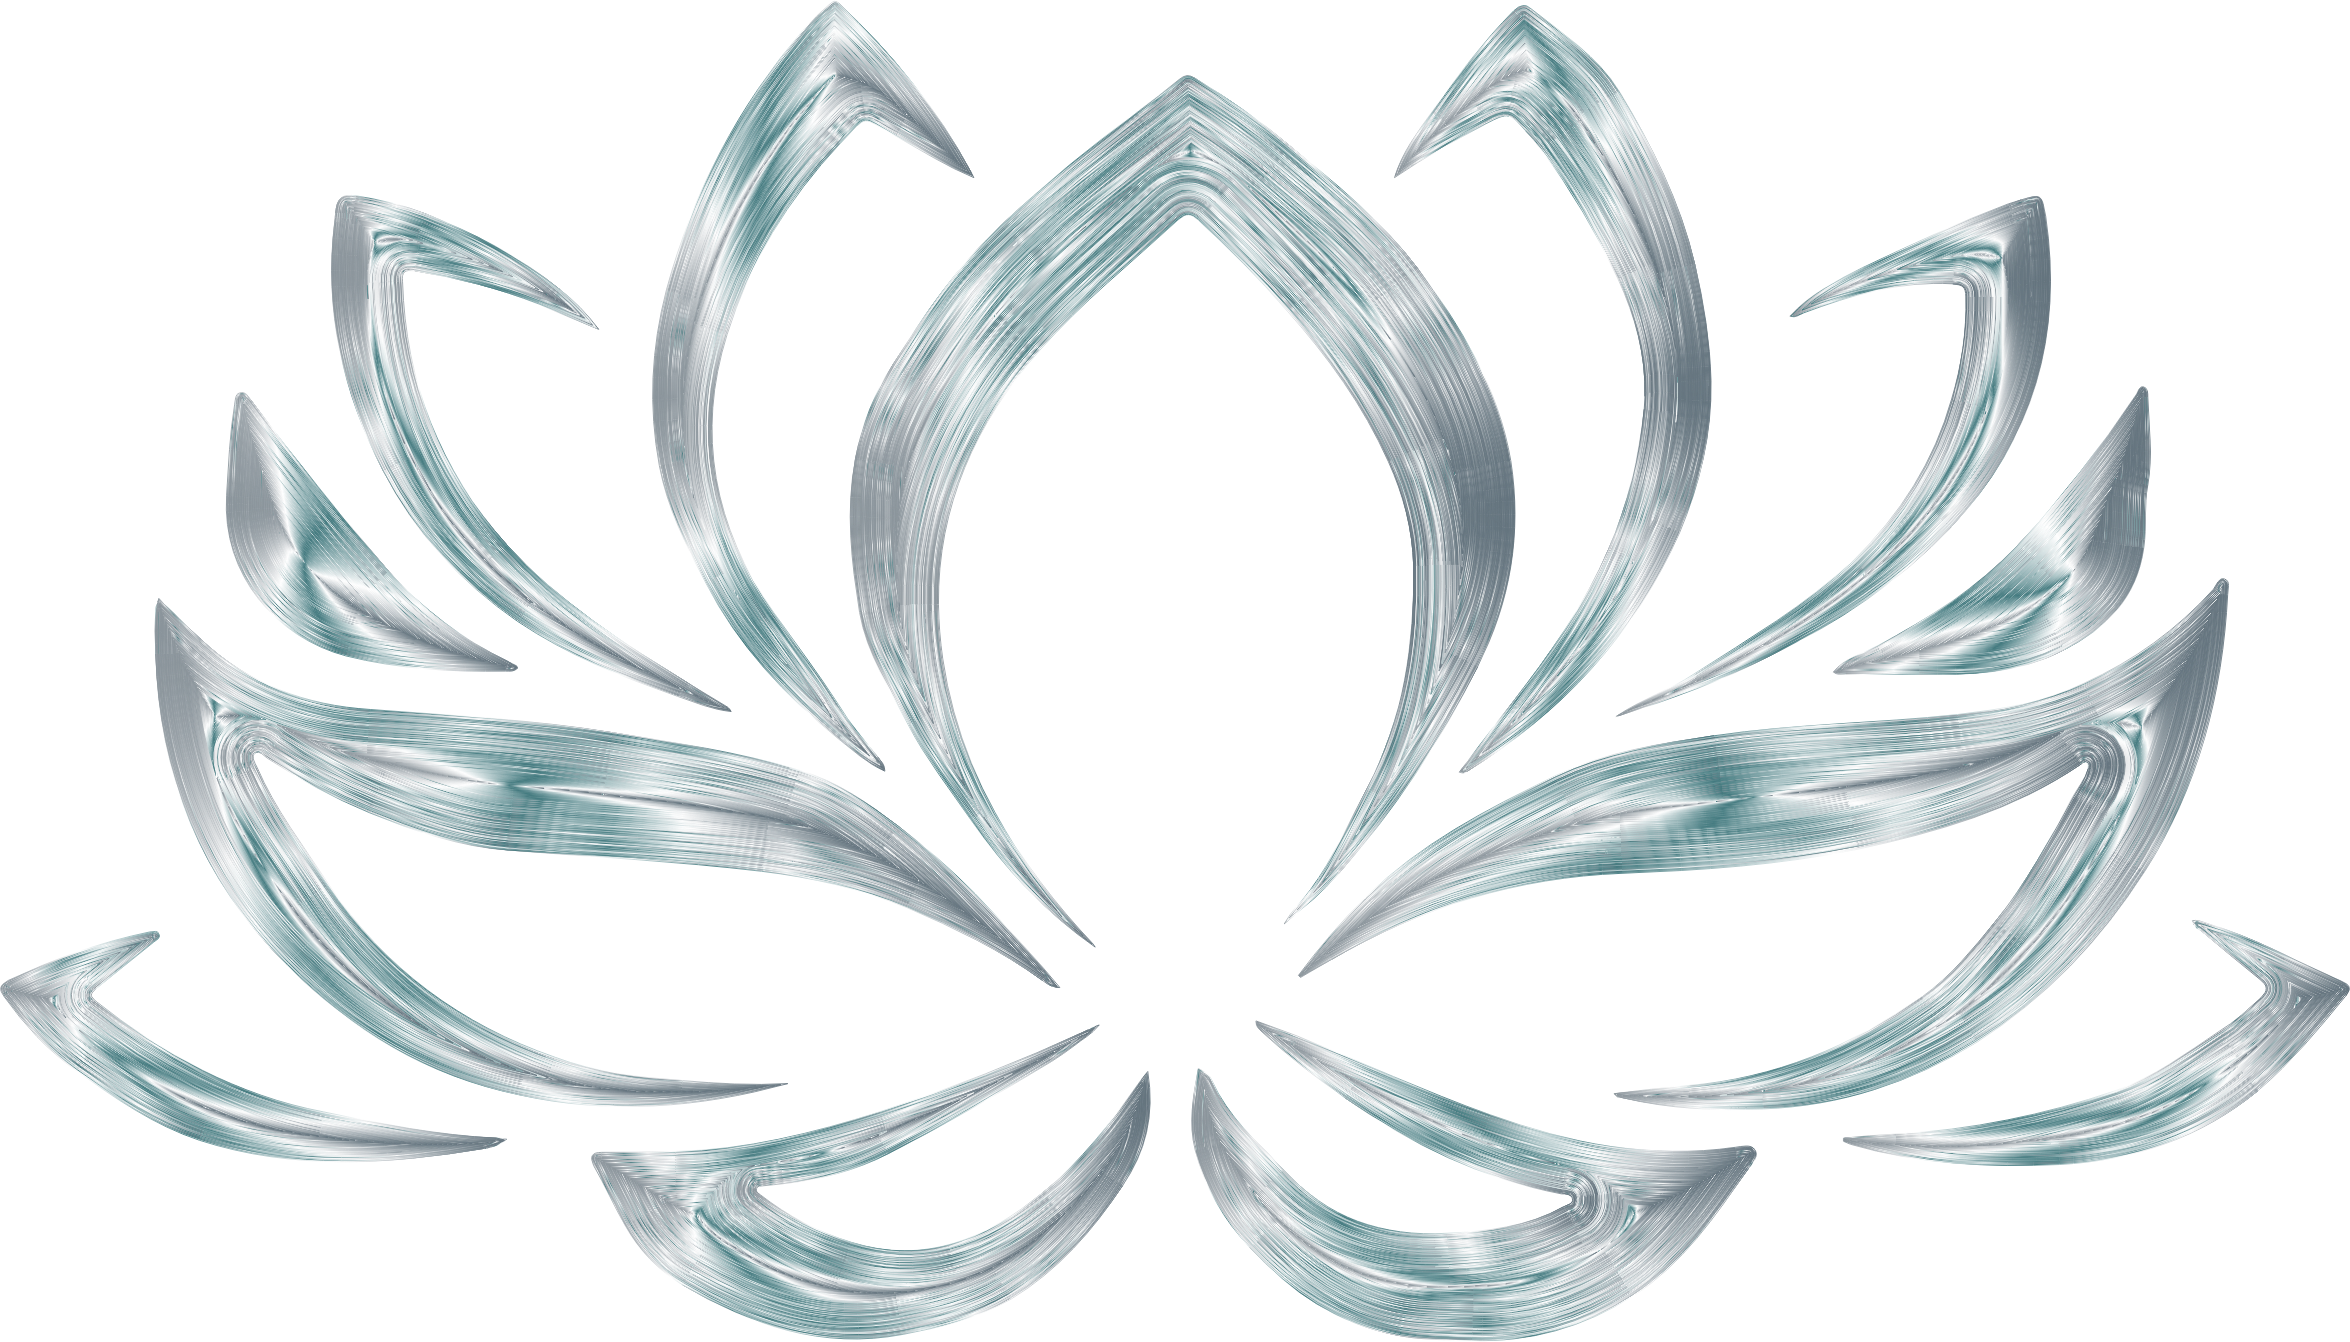 Flower no background clipart vector library Clipart - Silverized Lotus Flower No Background vector library